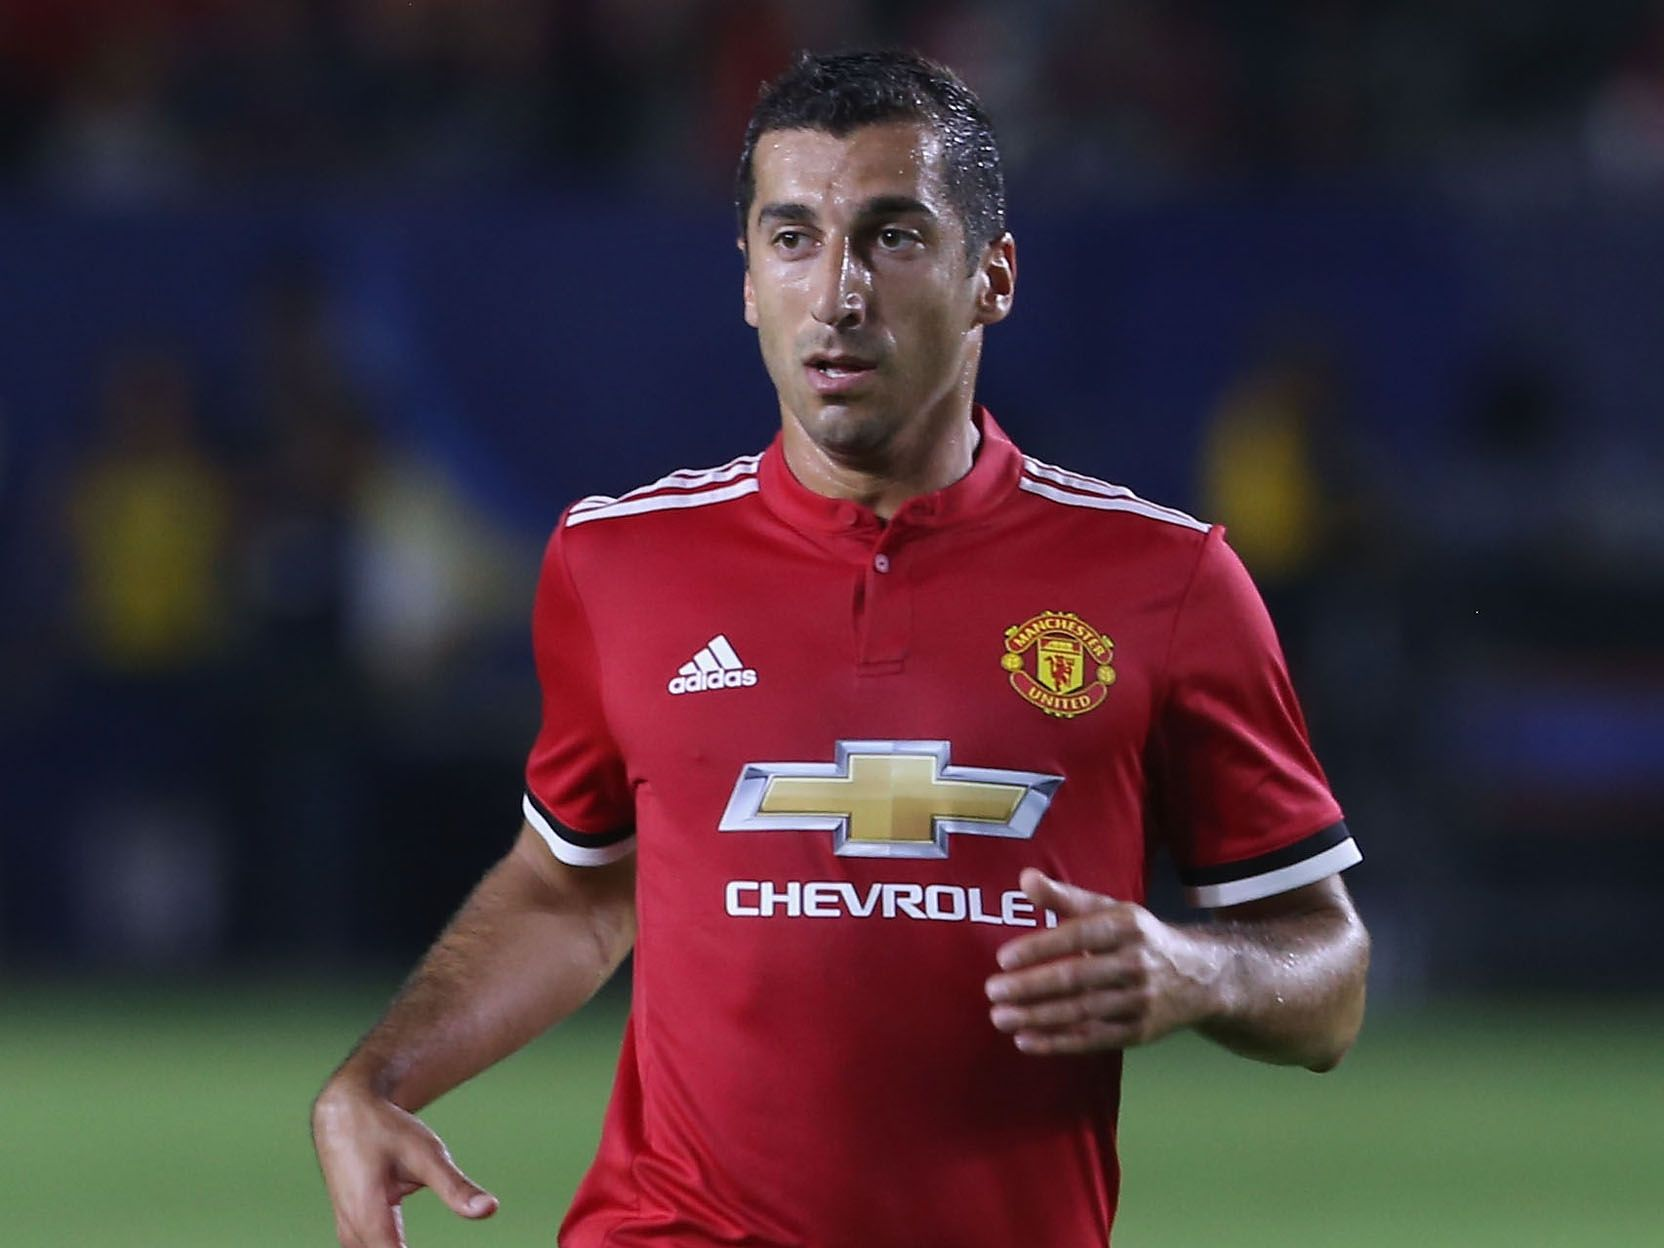 Henrikh Mkhitaryan insists only 'hard work' will keep him being dropped from Manchester United's first team again